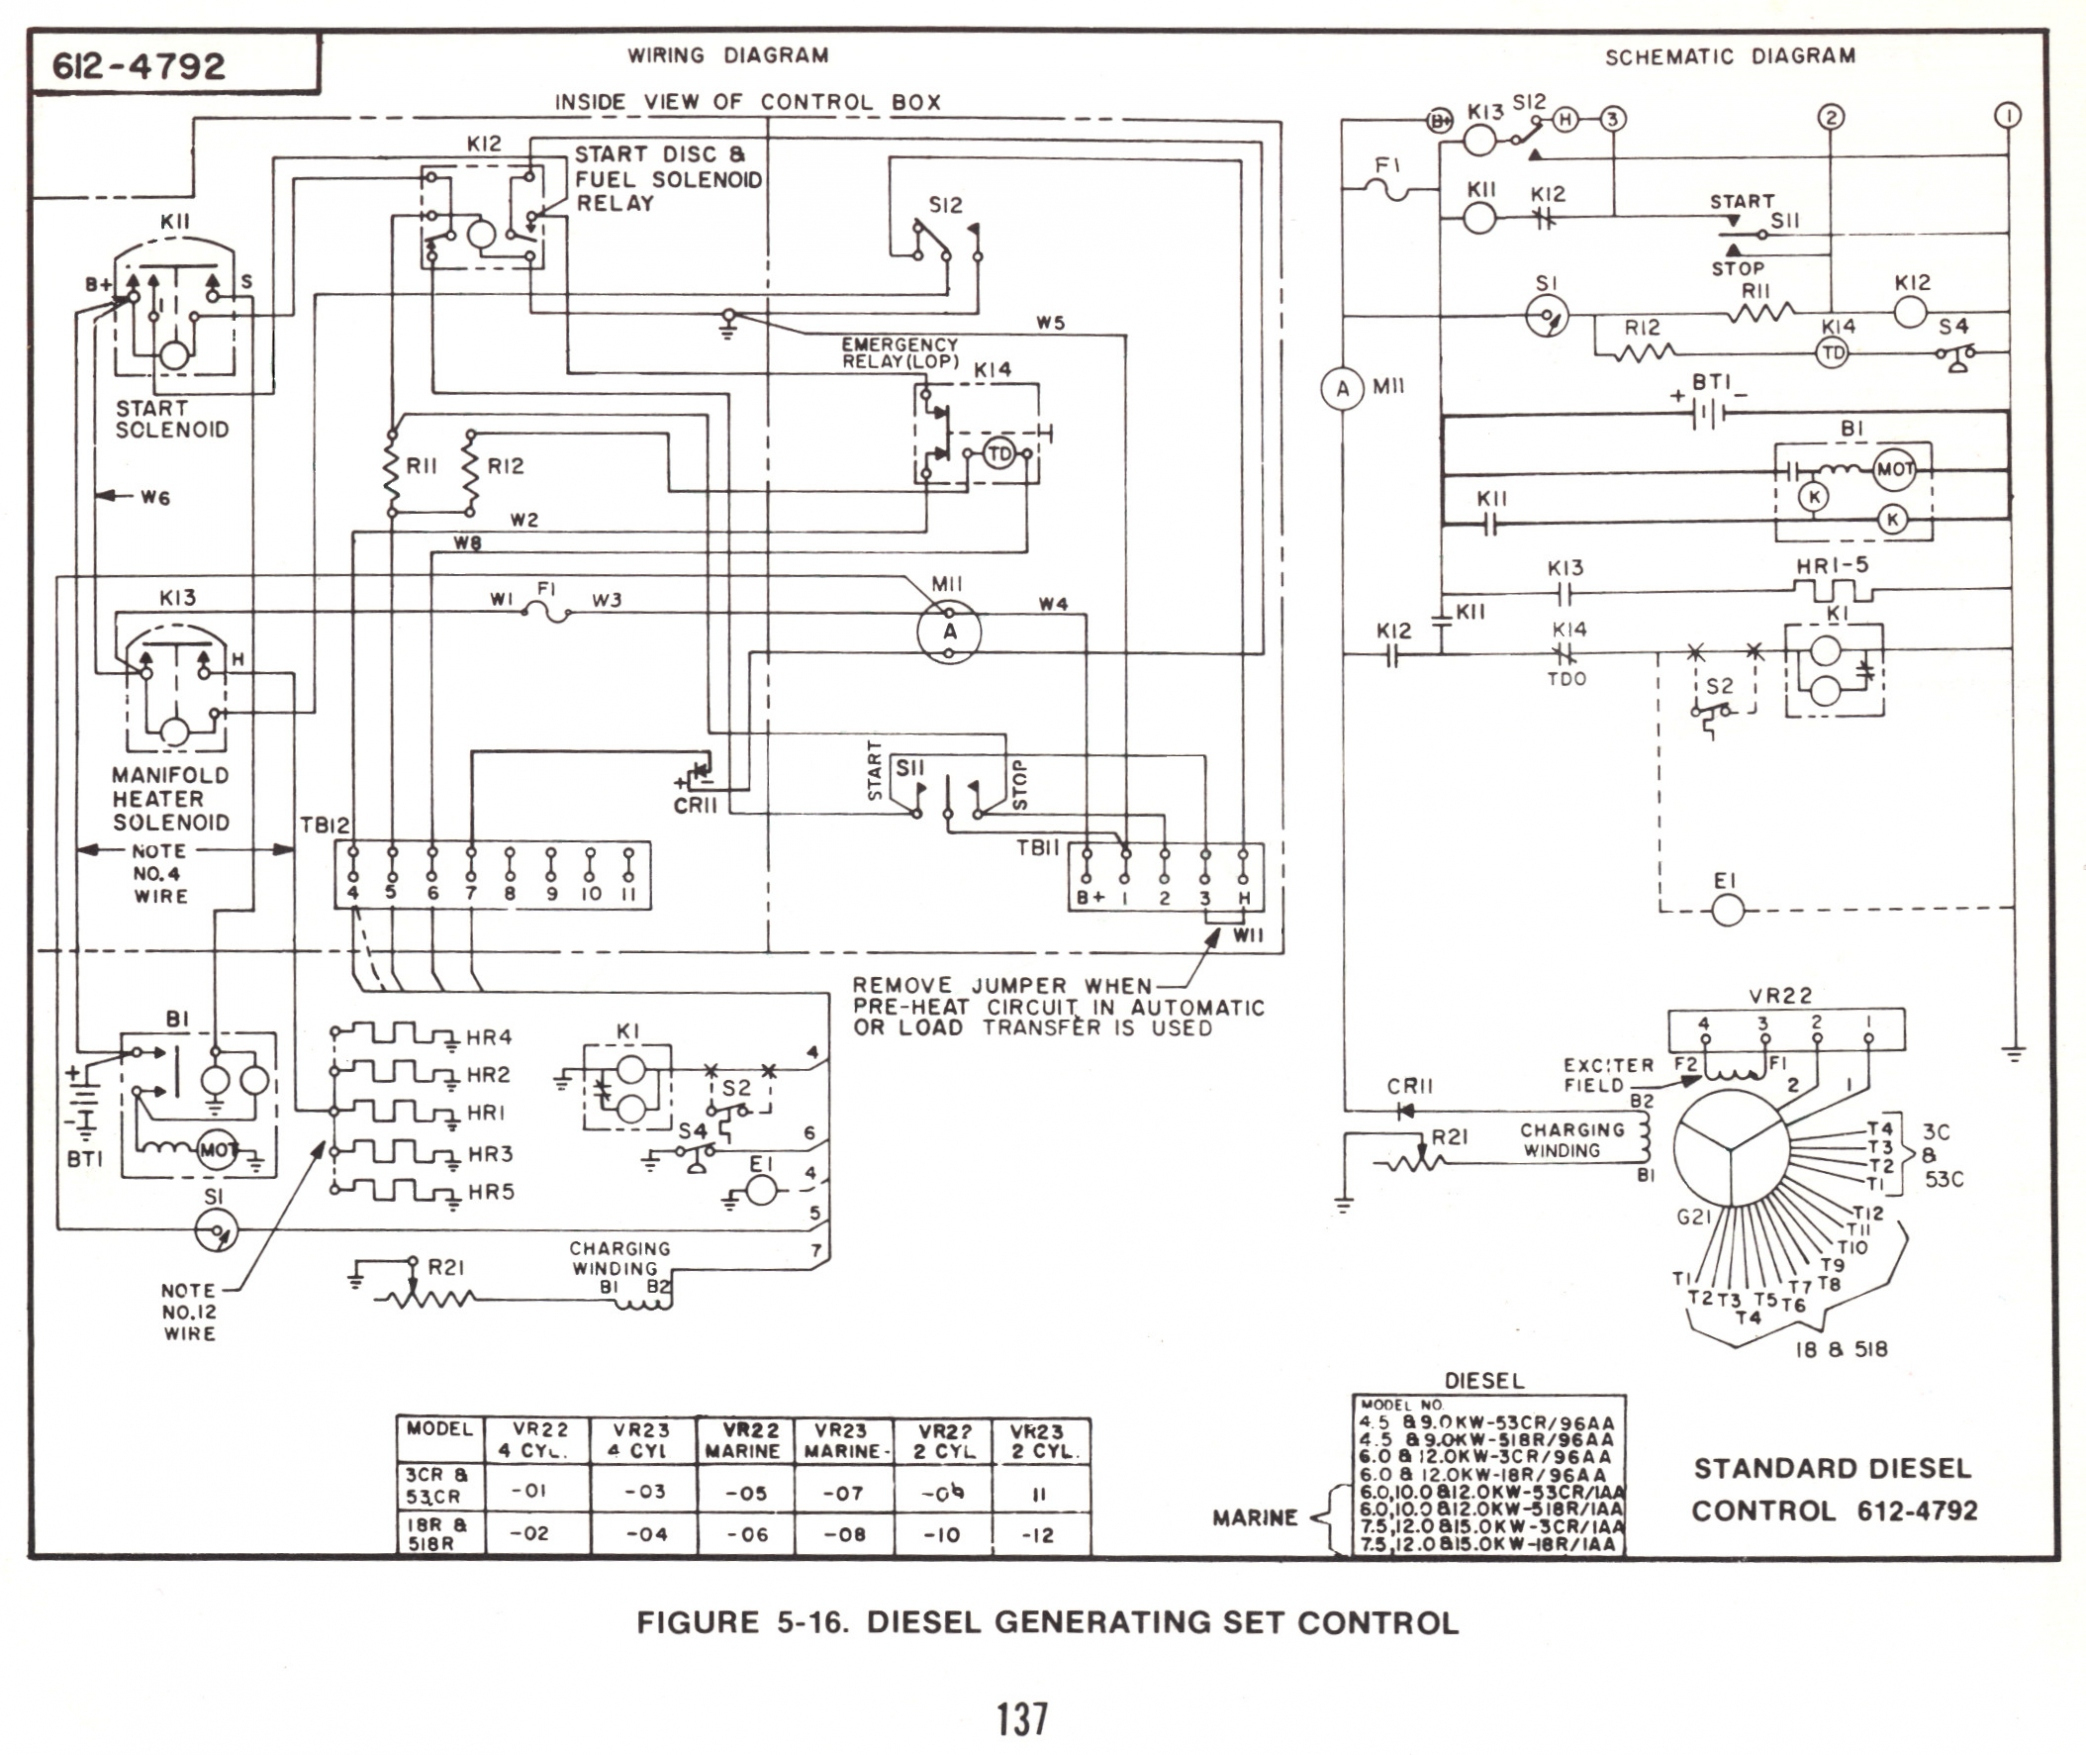 Diagram Wiring Diagram For Onan Rv Generator Full